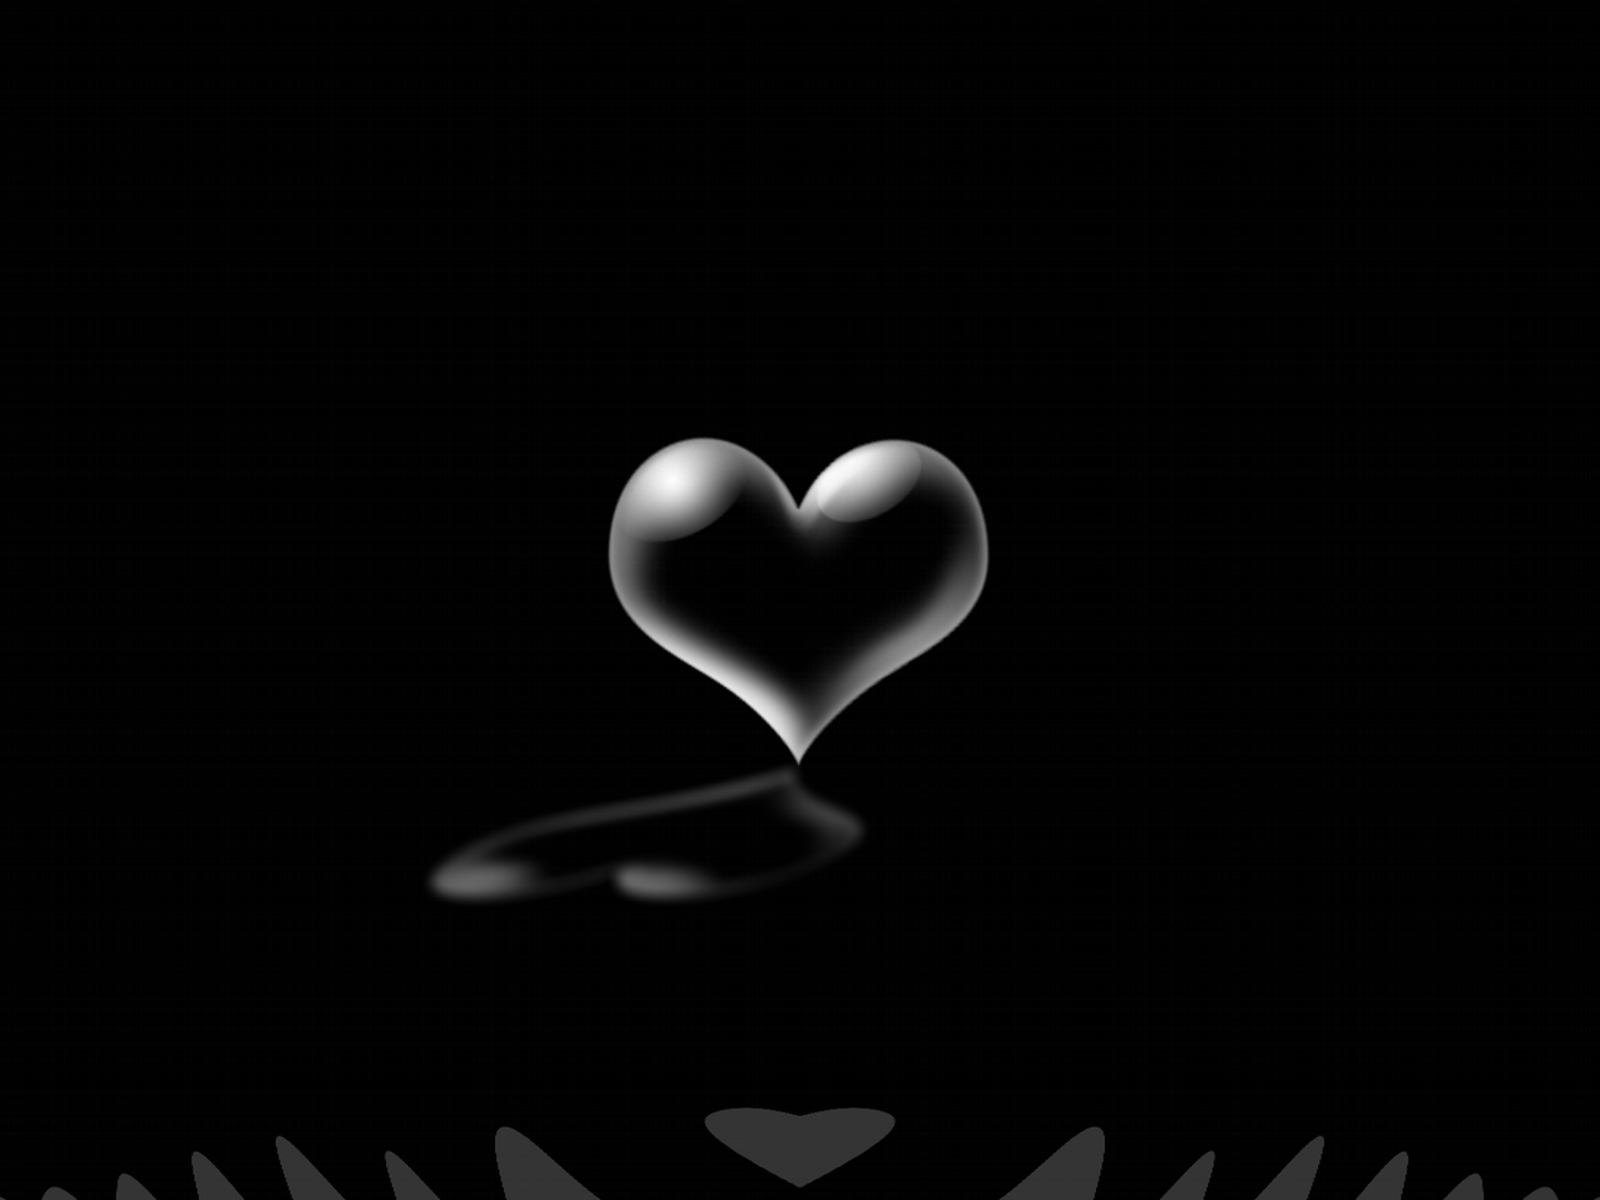 Black Heart Wallpaper Heart Wallpaper Dark Heart Black Wallpaper